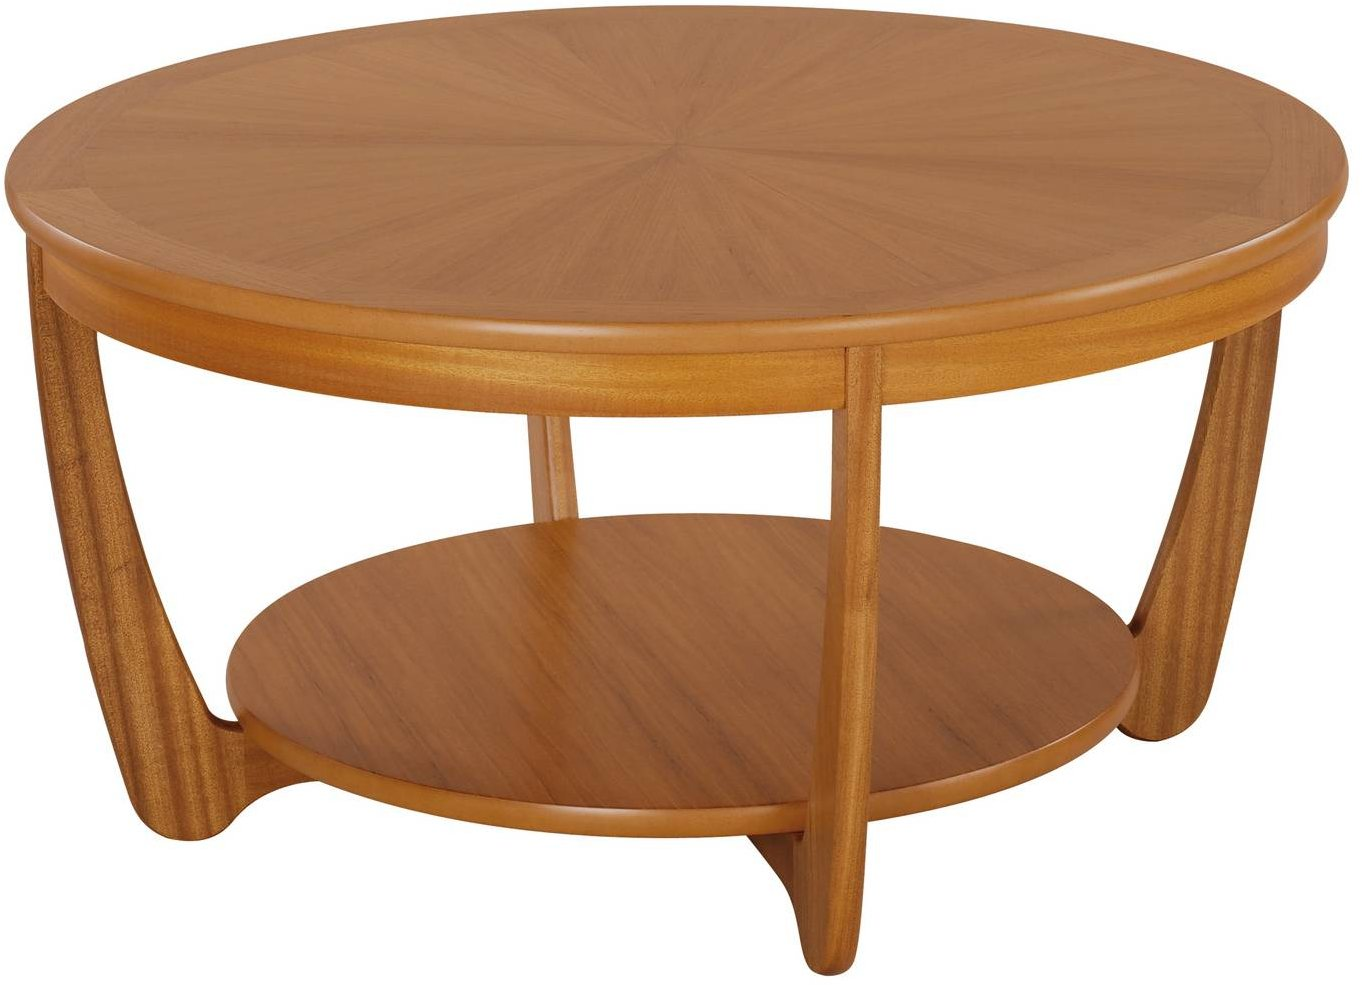 Nathan Sunburst Round Coffee Table - Teak - Coffee Tables ...